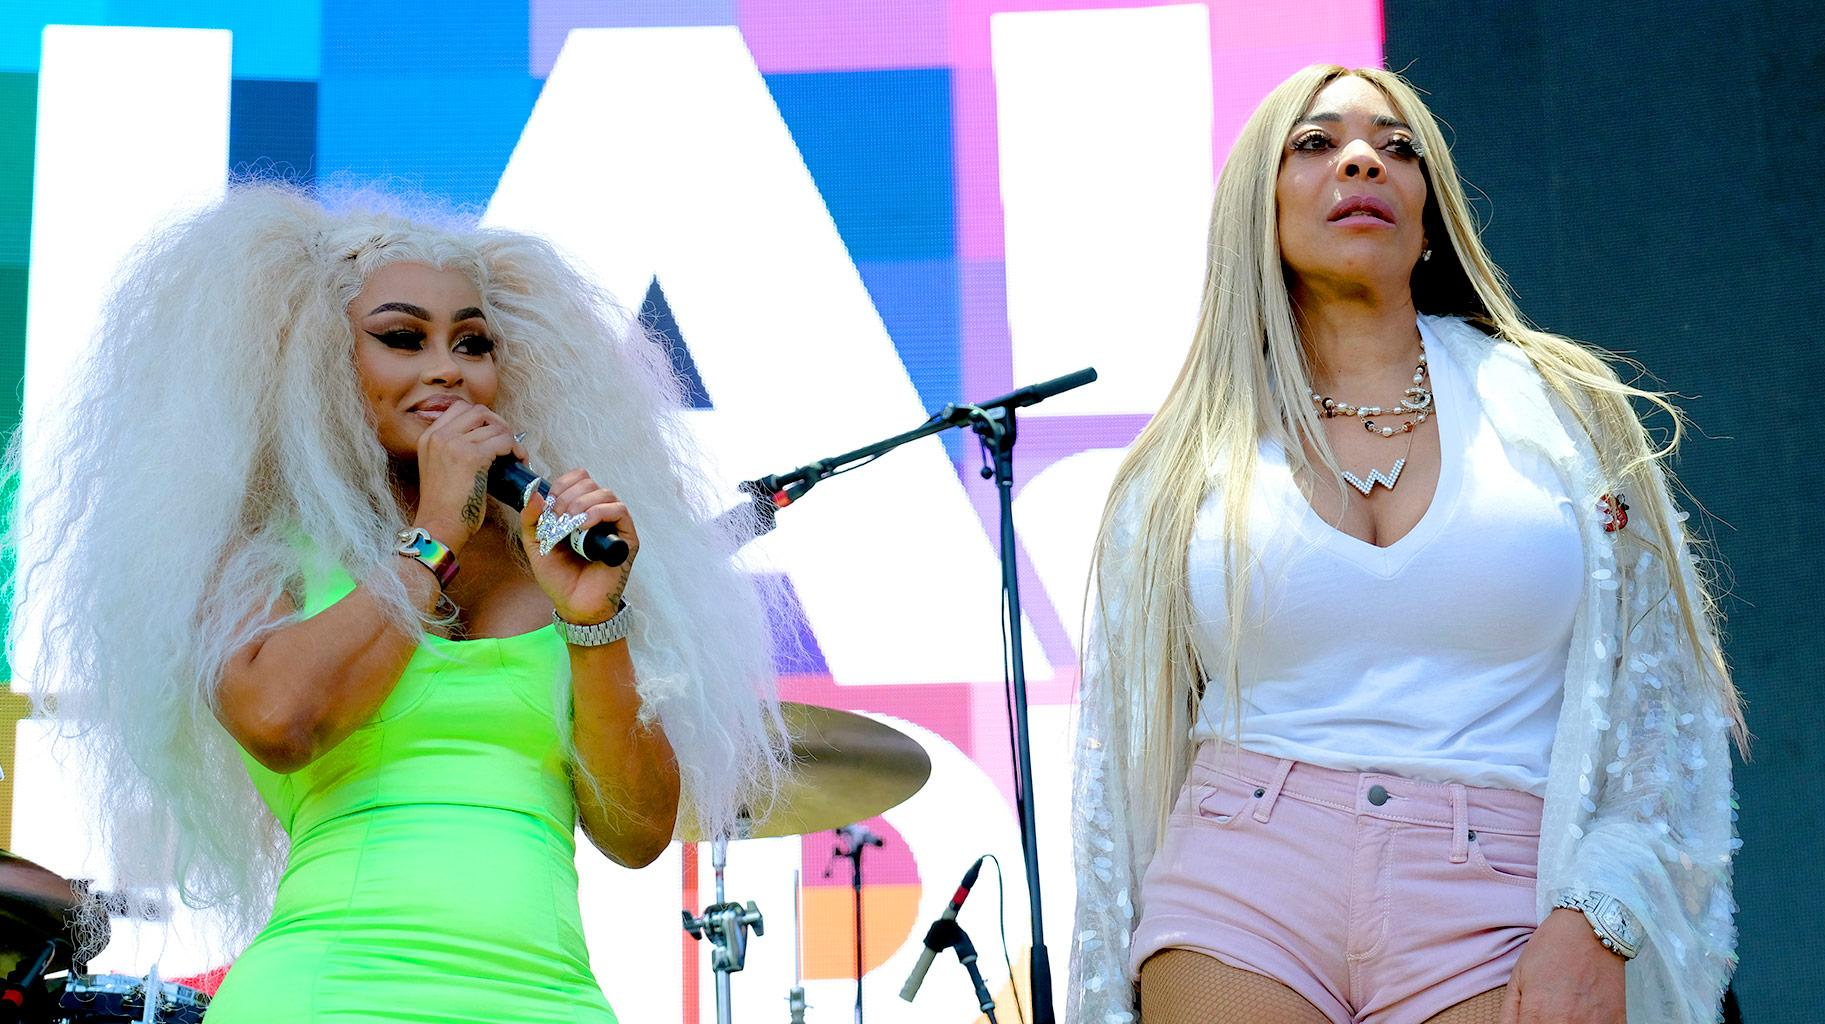 Wendy Williams Blurts Out That Blac Chyna Has No Place To Live During Her Show!